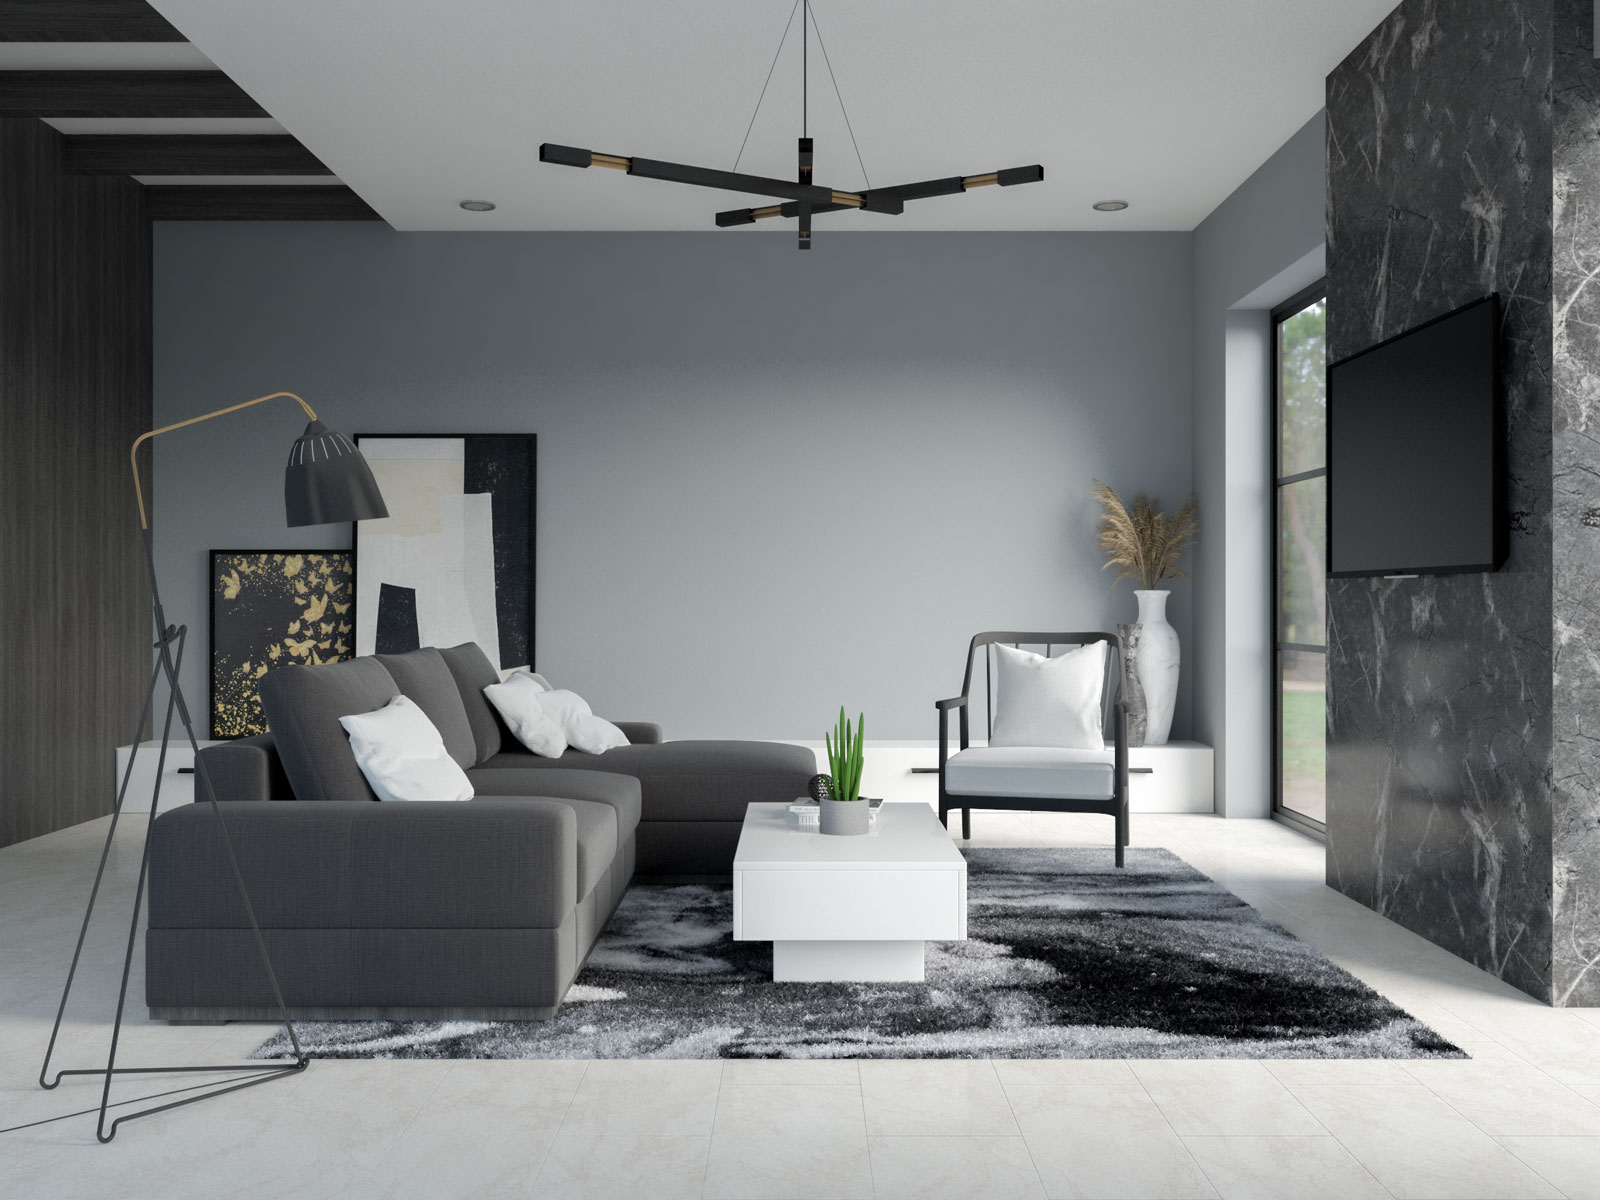 Steely gray walls with black and white furnishings